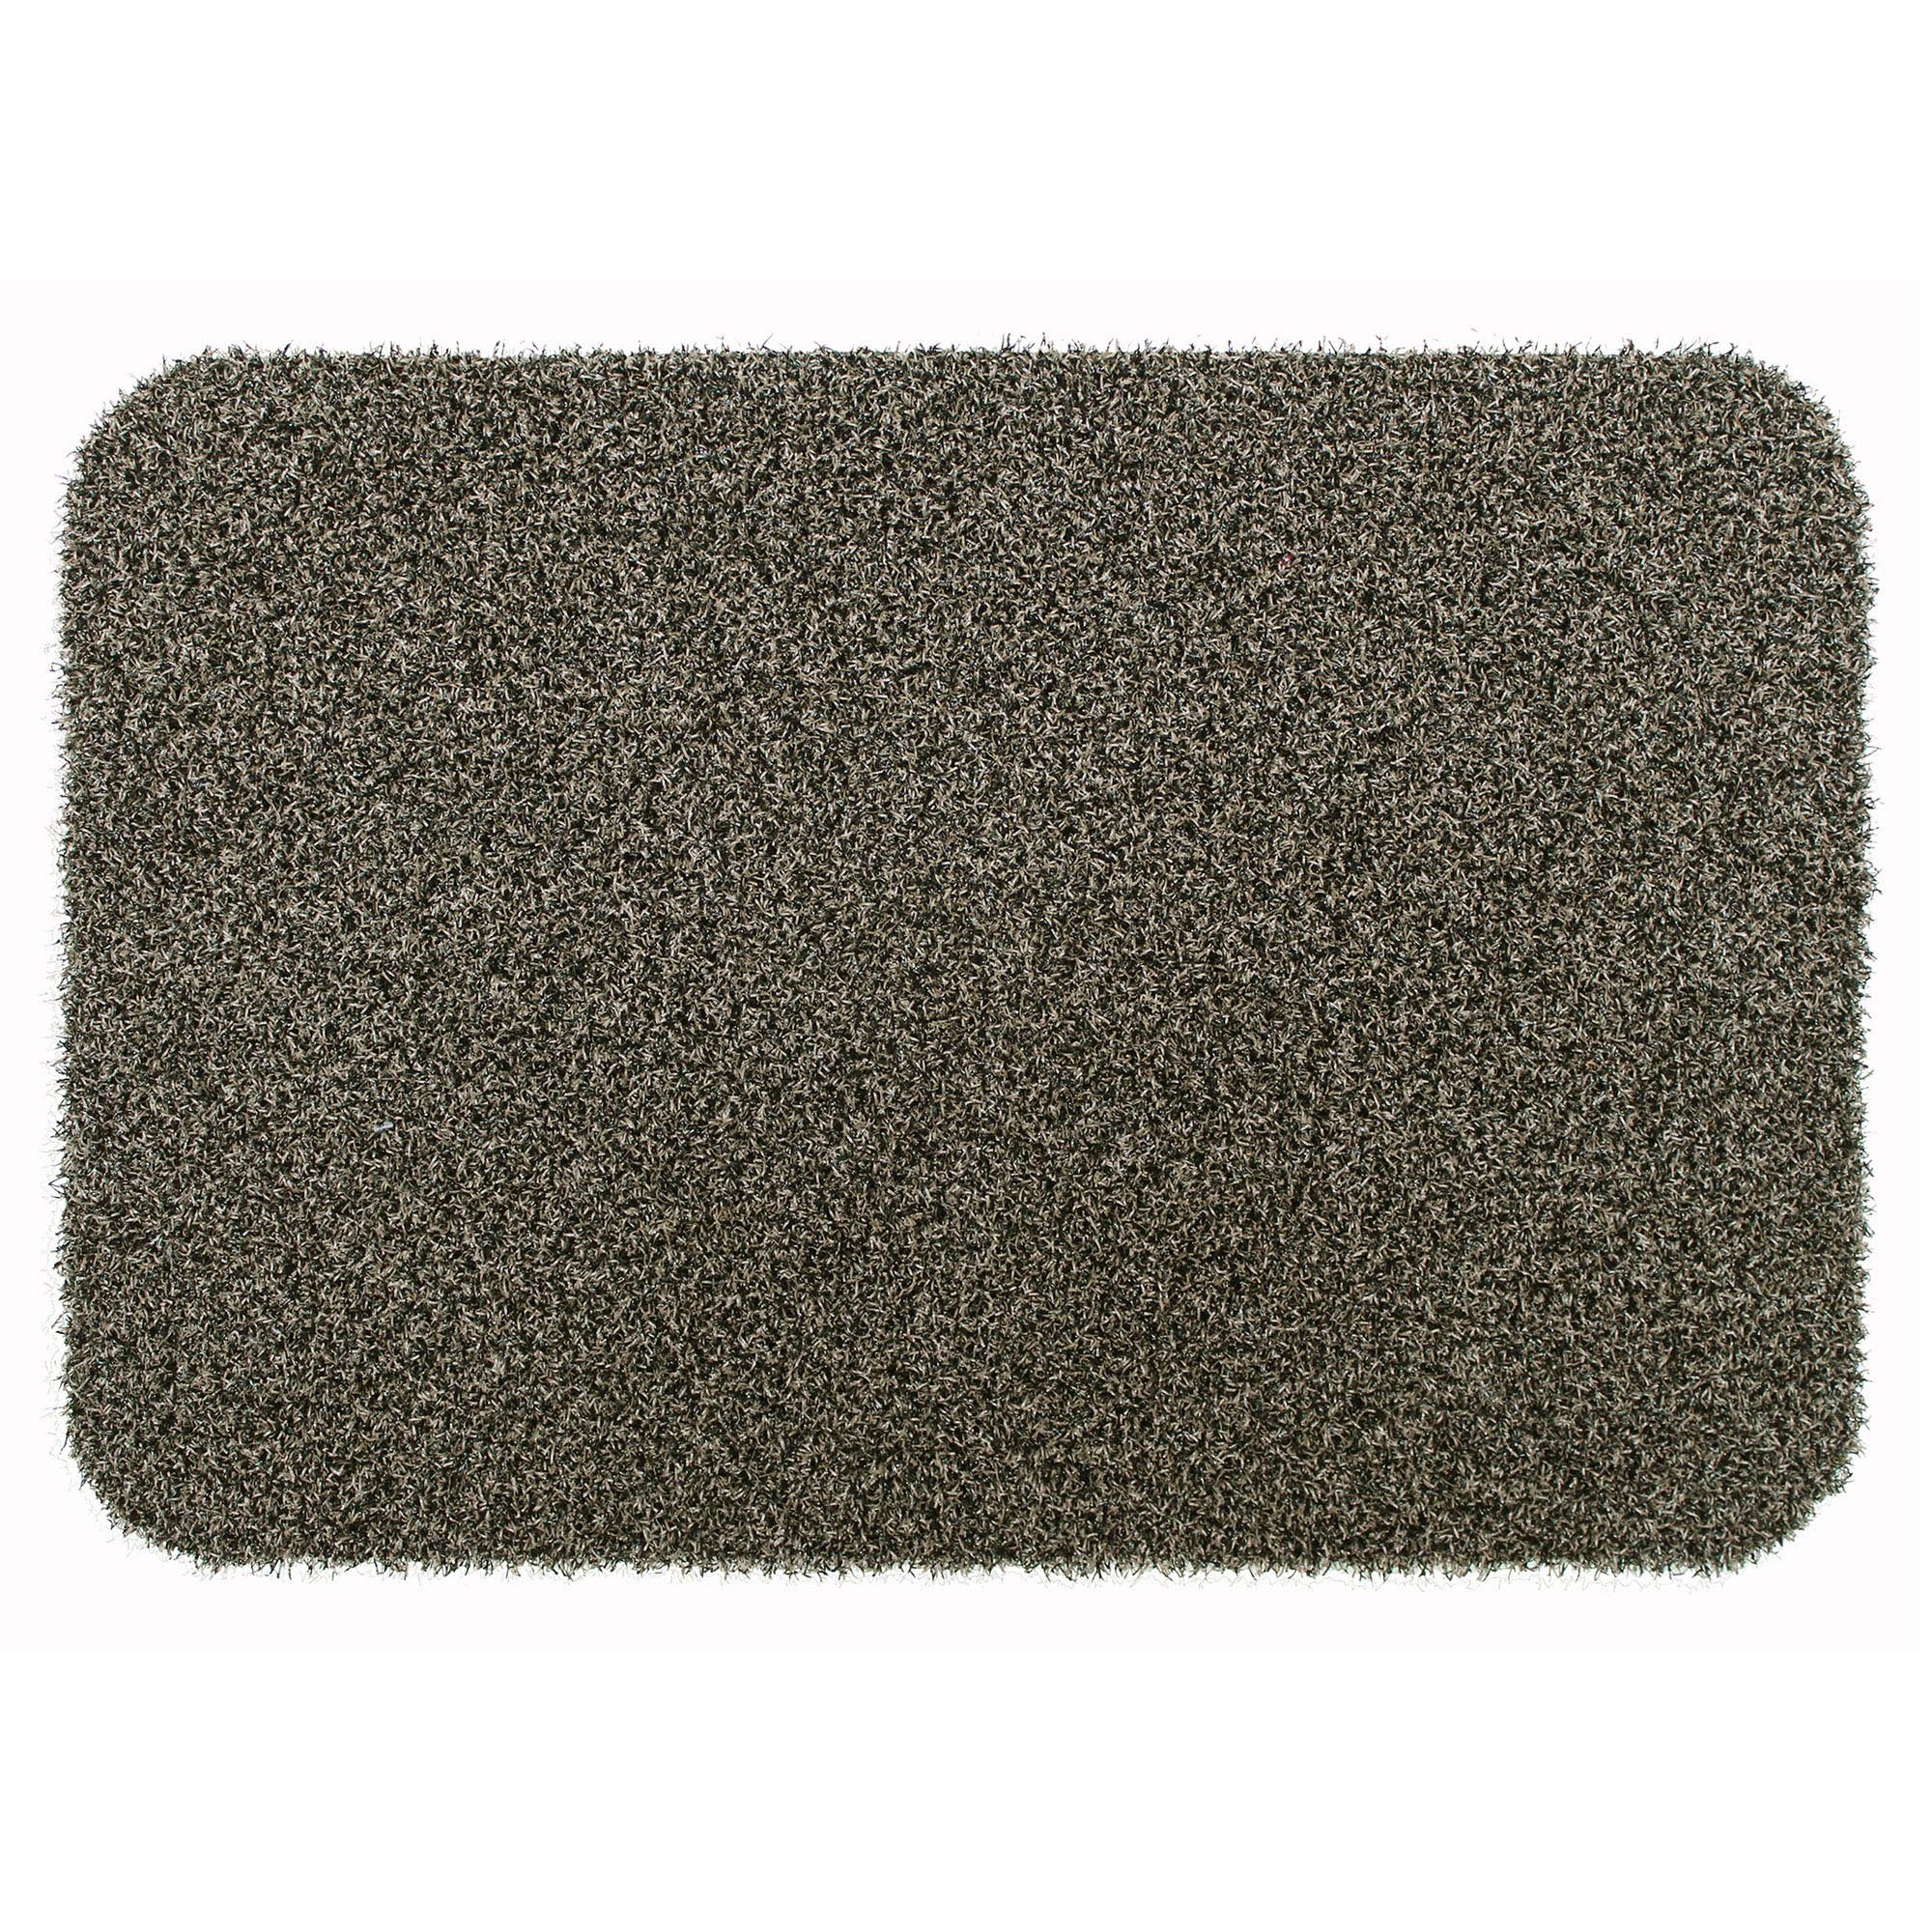 Super Scraper Doormat